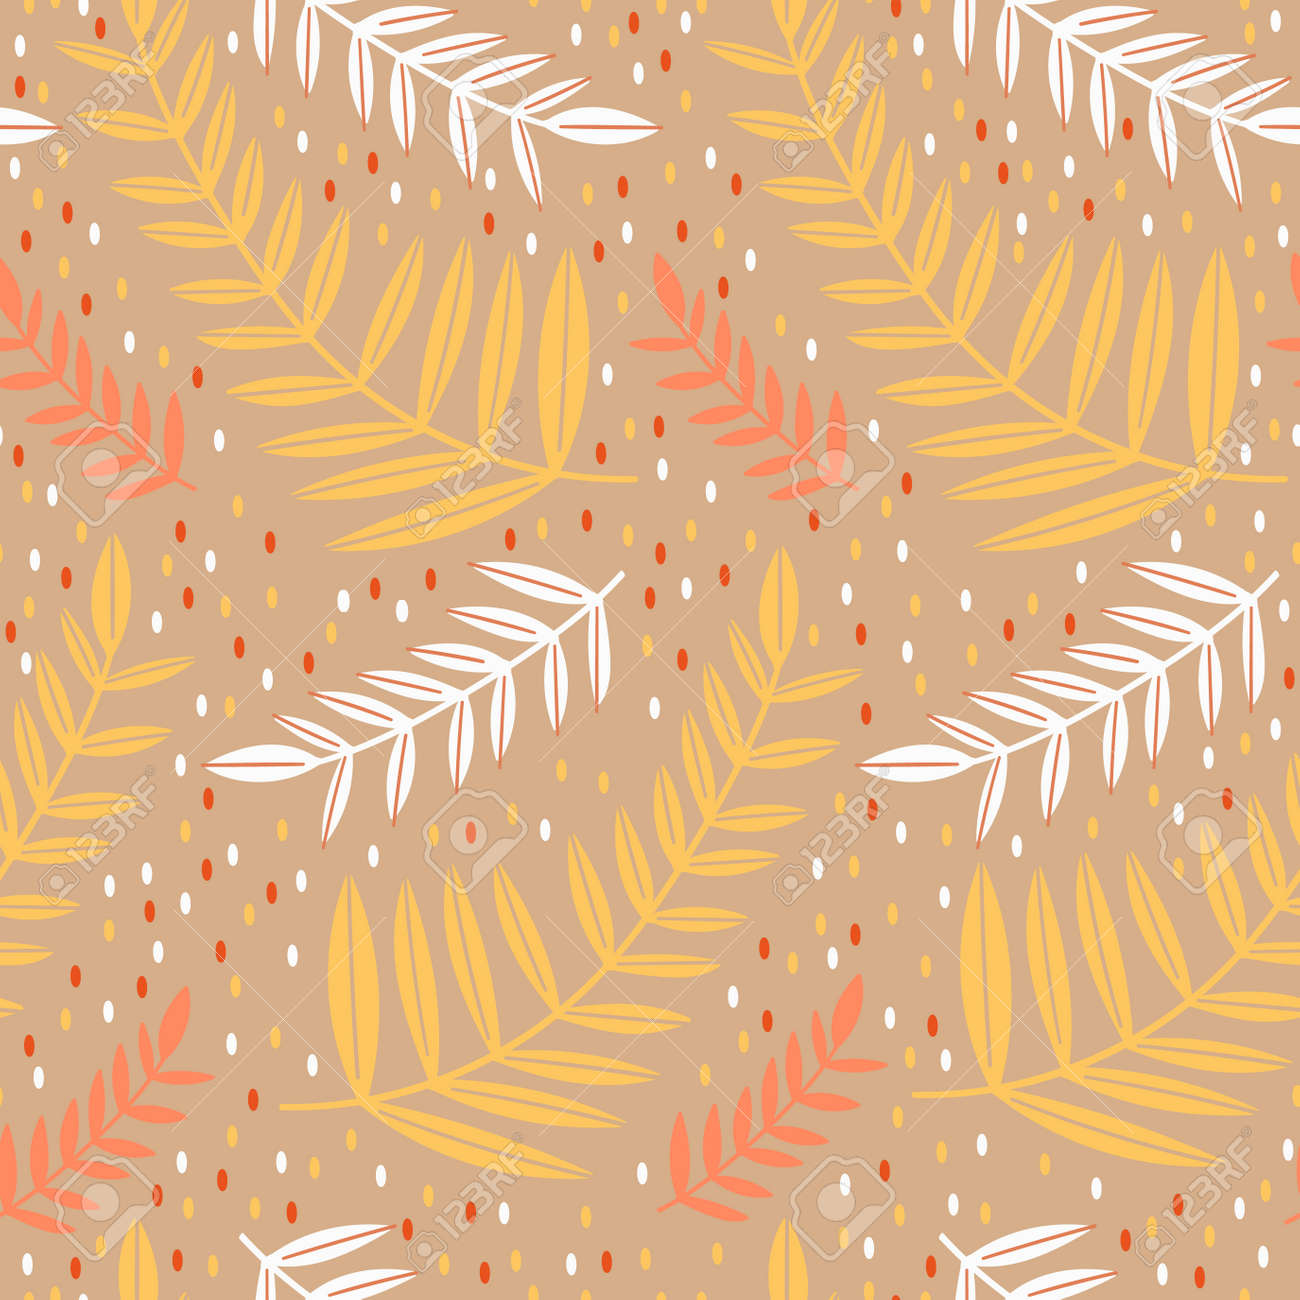 Seamless pattern leaves plant .Floral motif nature abstract print.Modern summer background. - 170424790